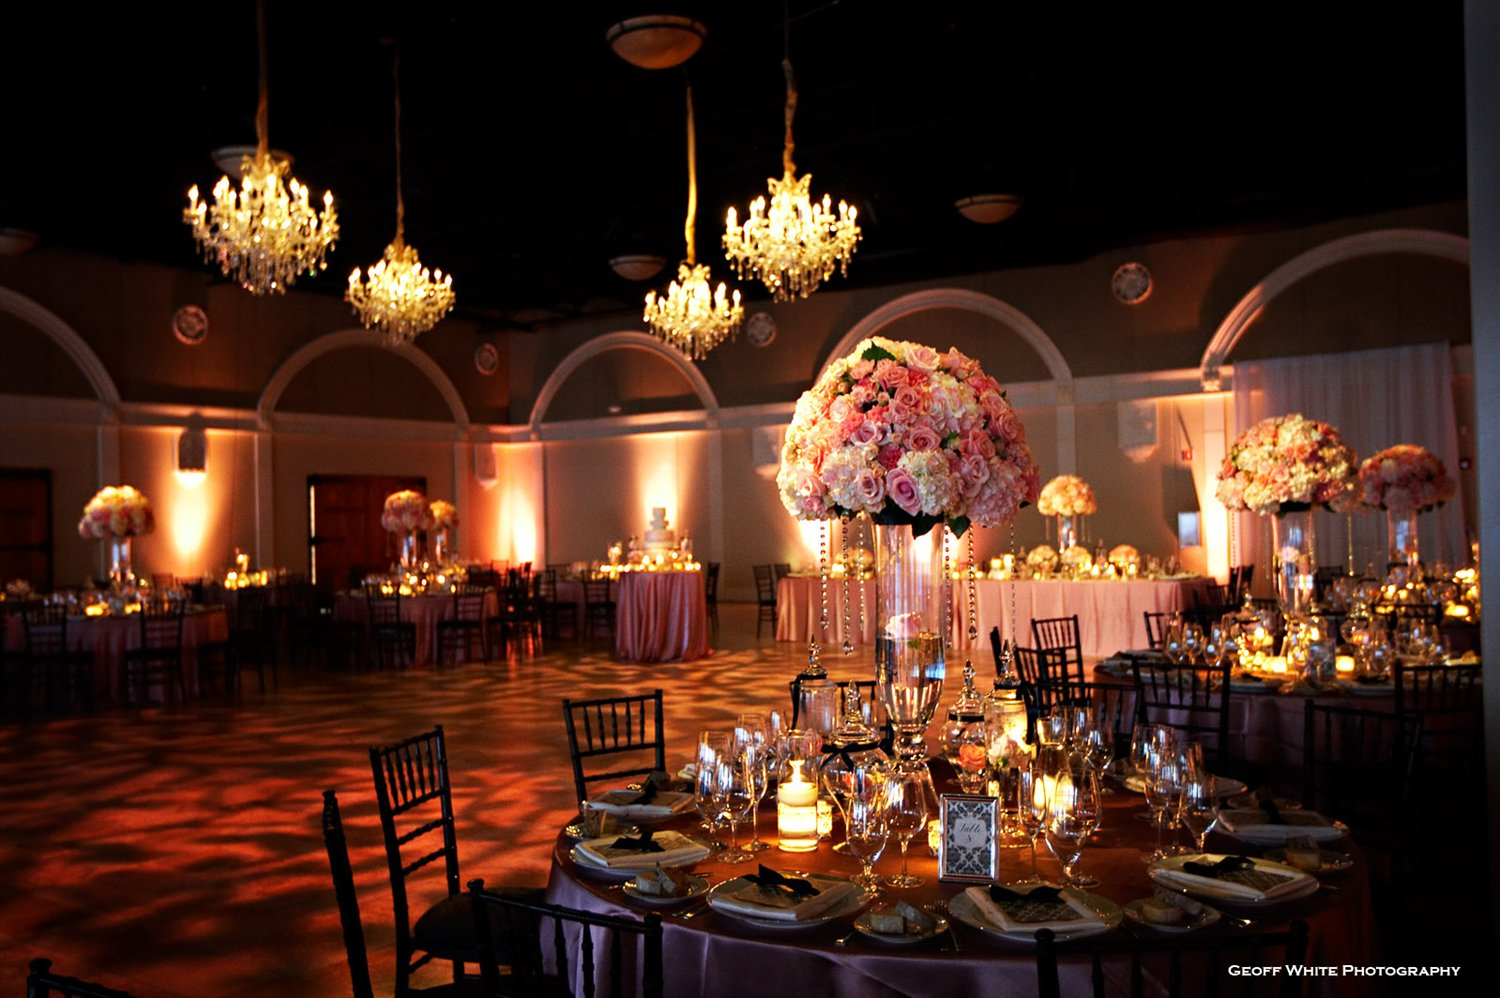 Outdoor Wedding Lighting Ideas From Real Celebrations: Banquet Hall Decoration Ideas